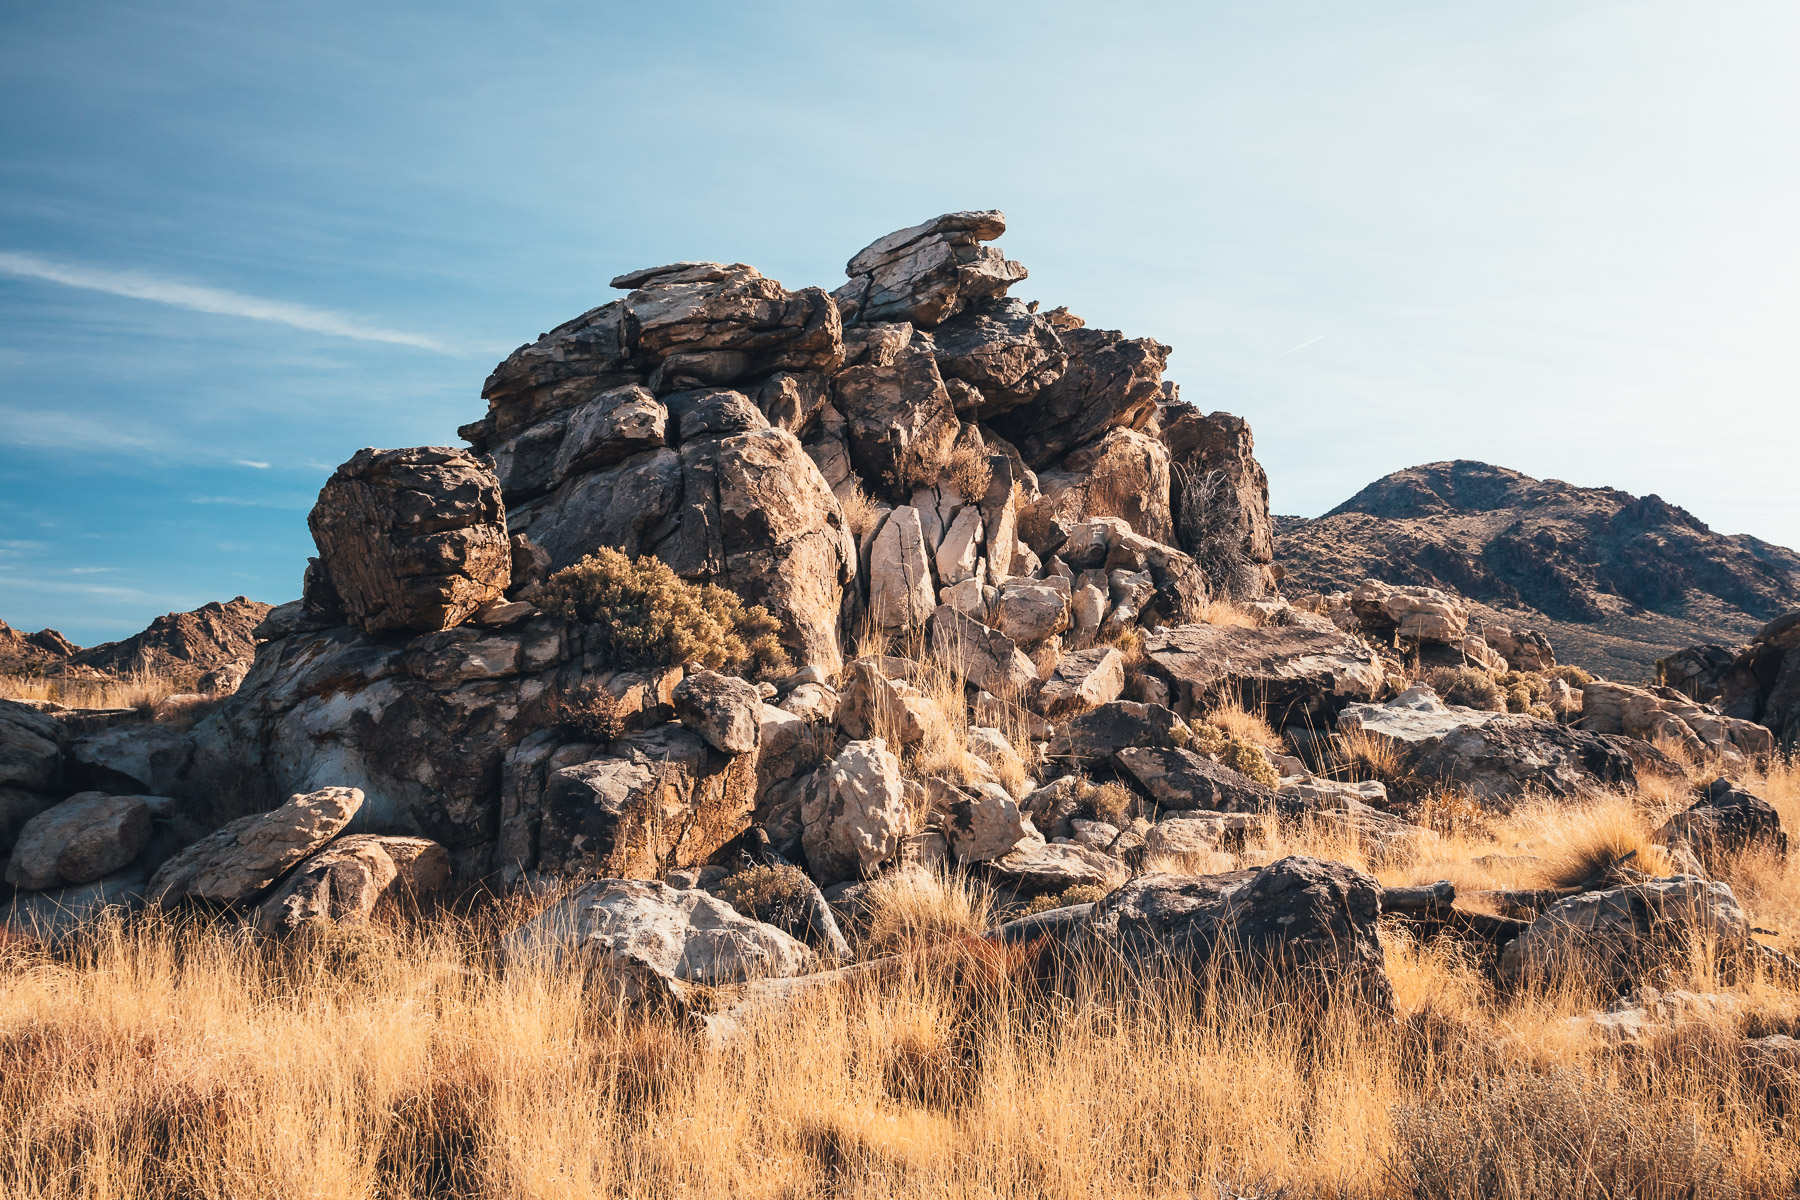 An outcropping of rocks rises amongst the tall desert grass at the Mojave National Preserve, California.